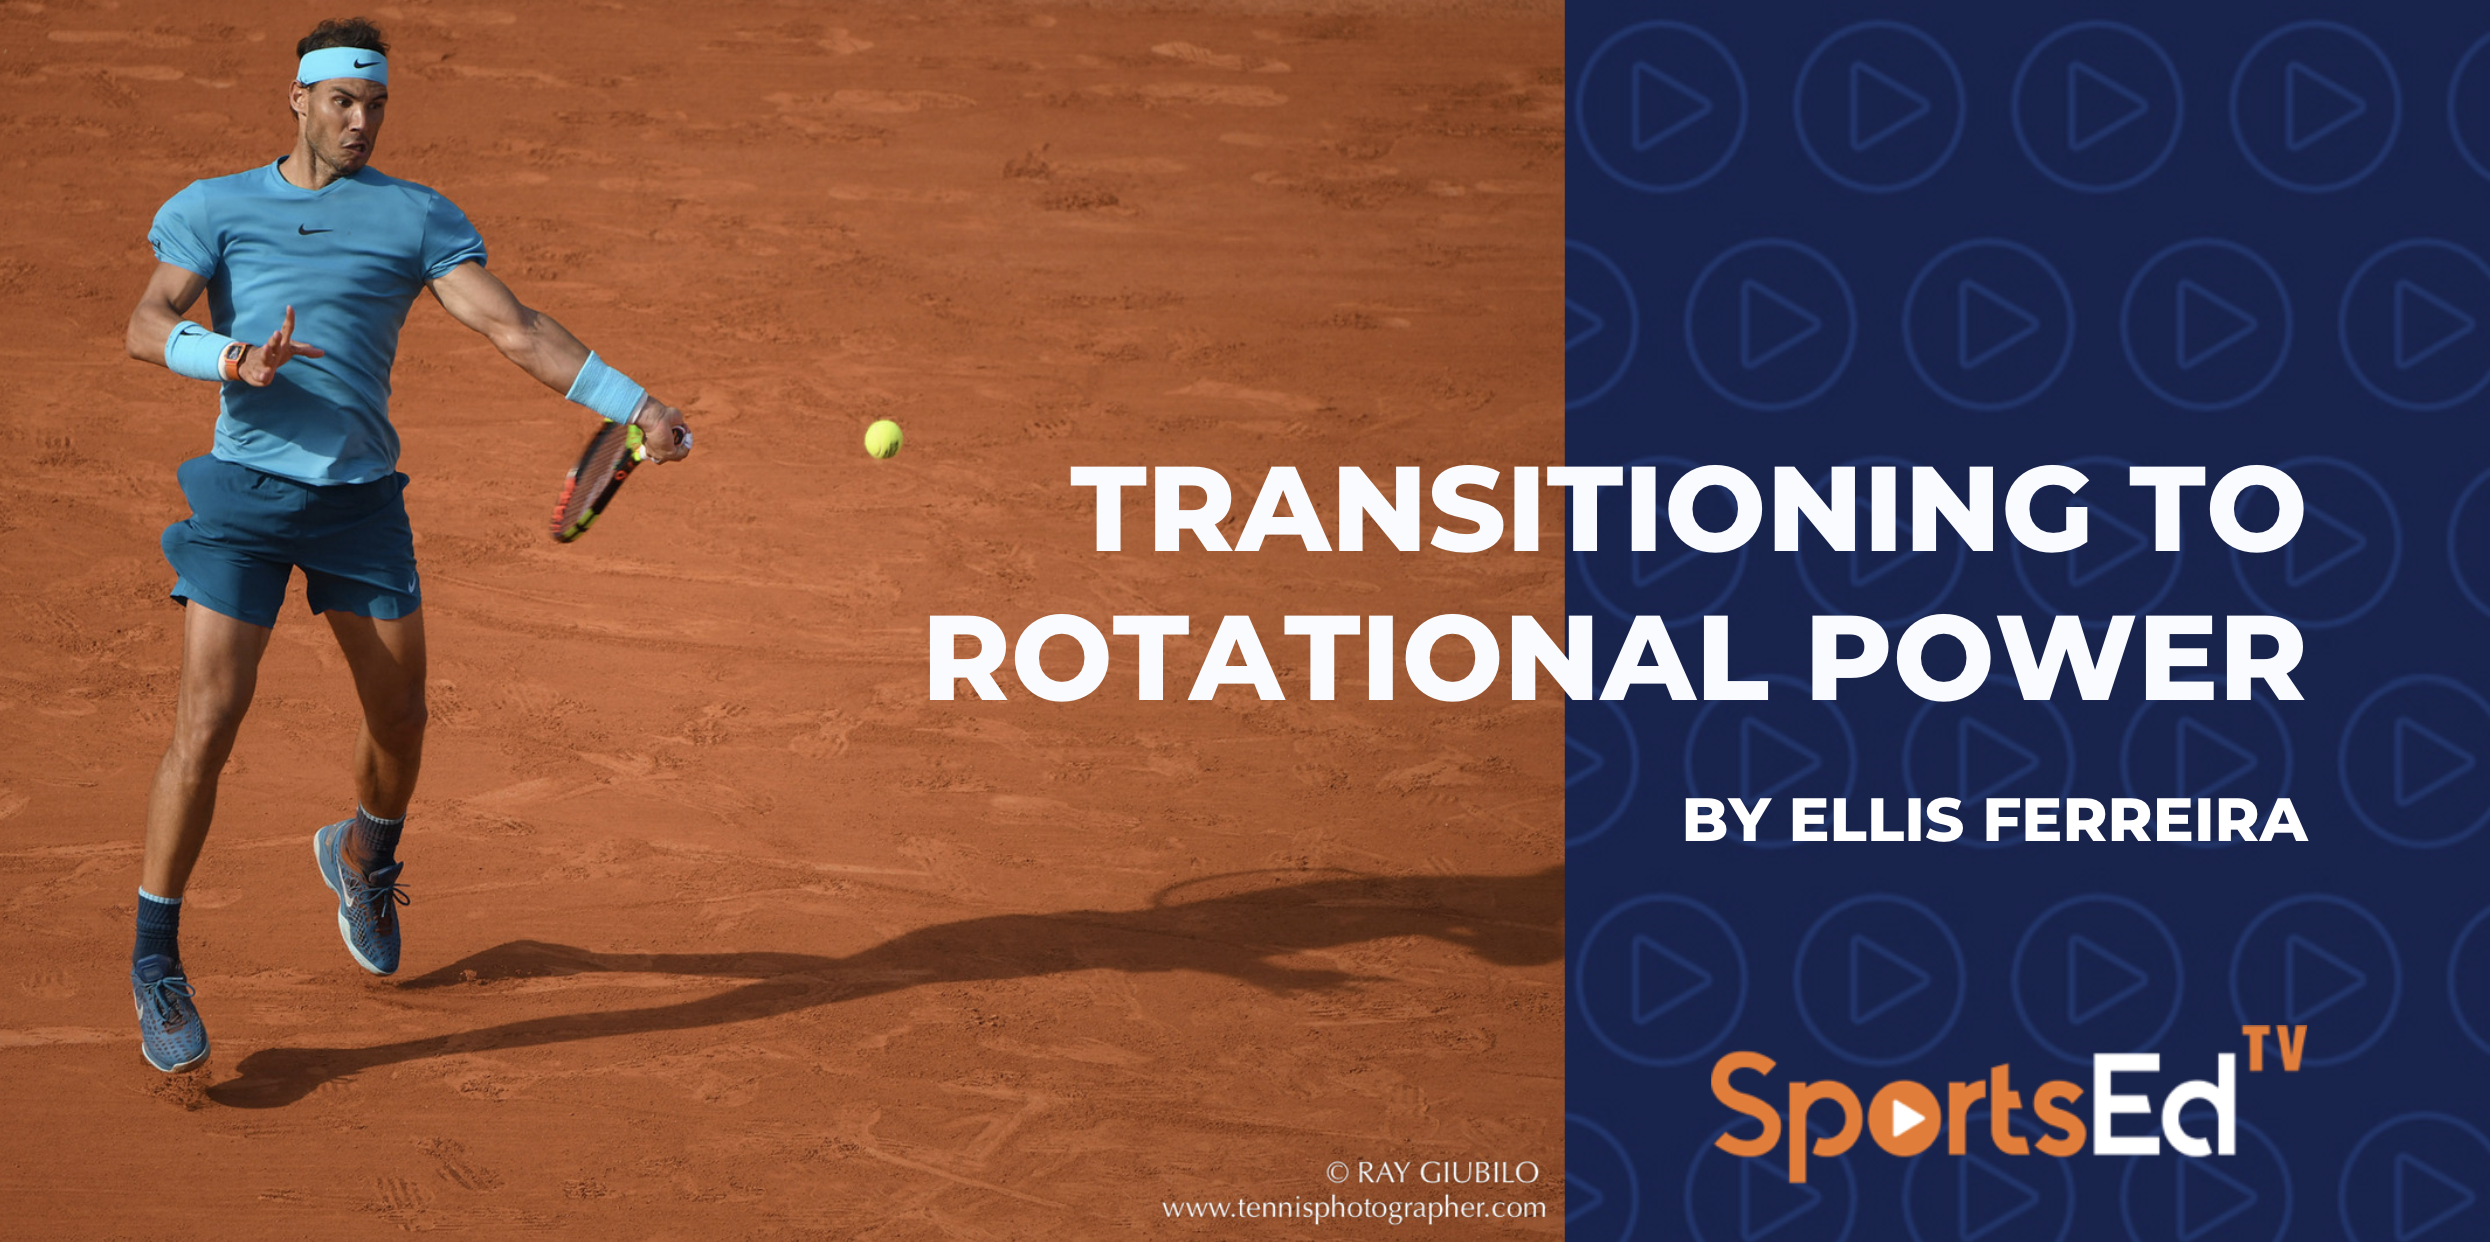 Transitioning to Rotational Power